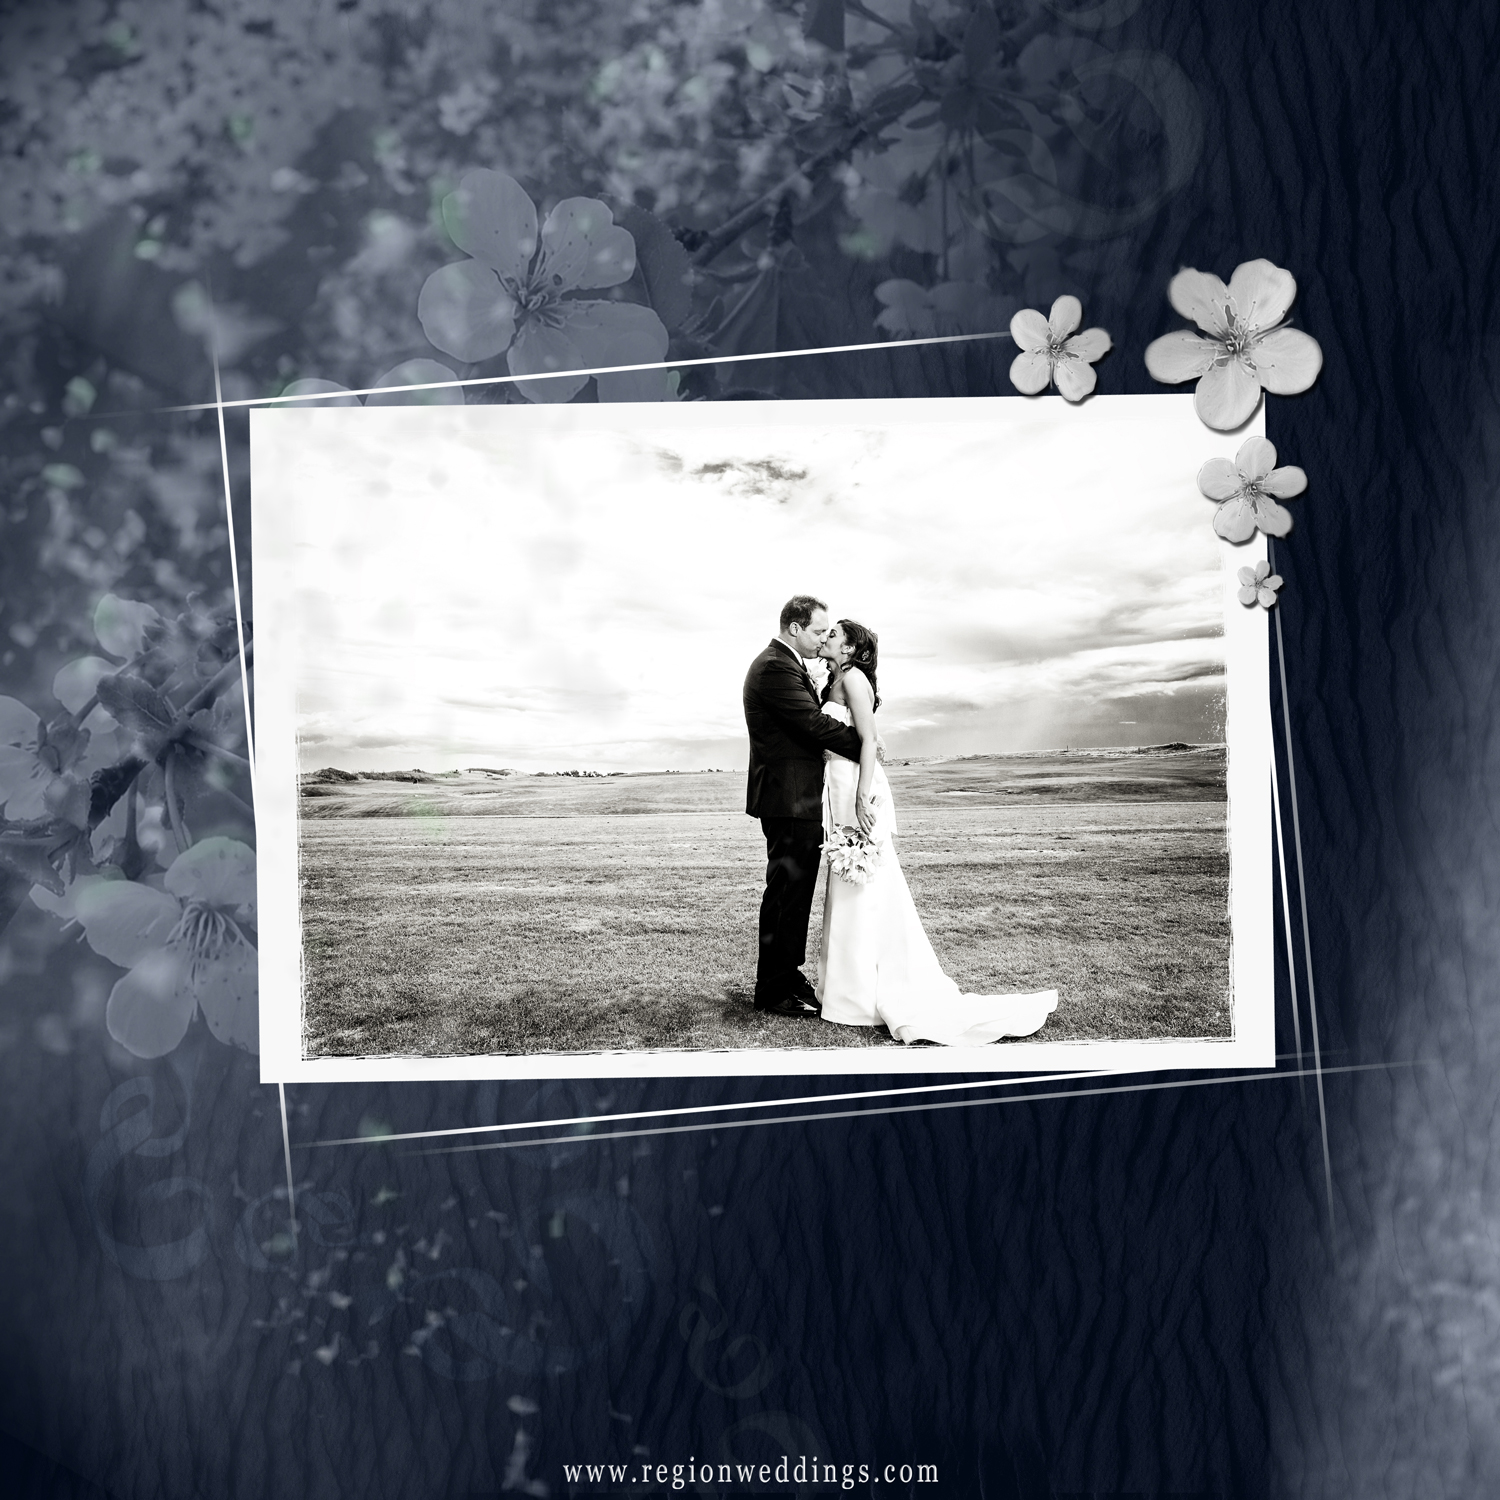 The back cover for a wedding album with a blue and white flower design.